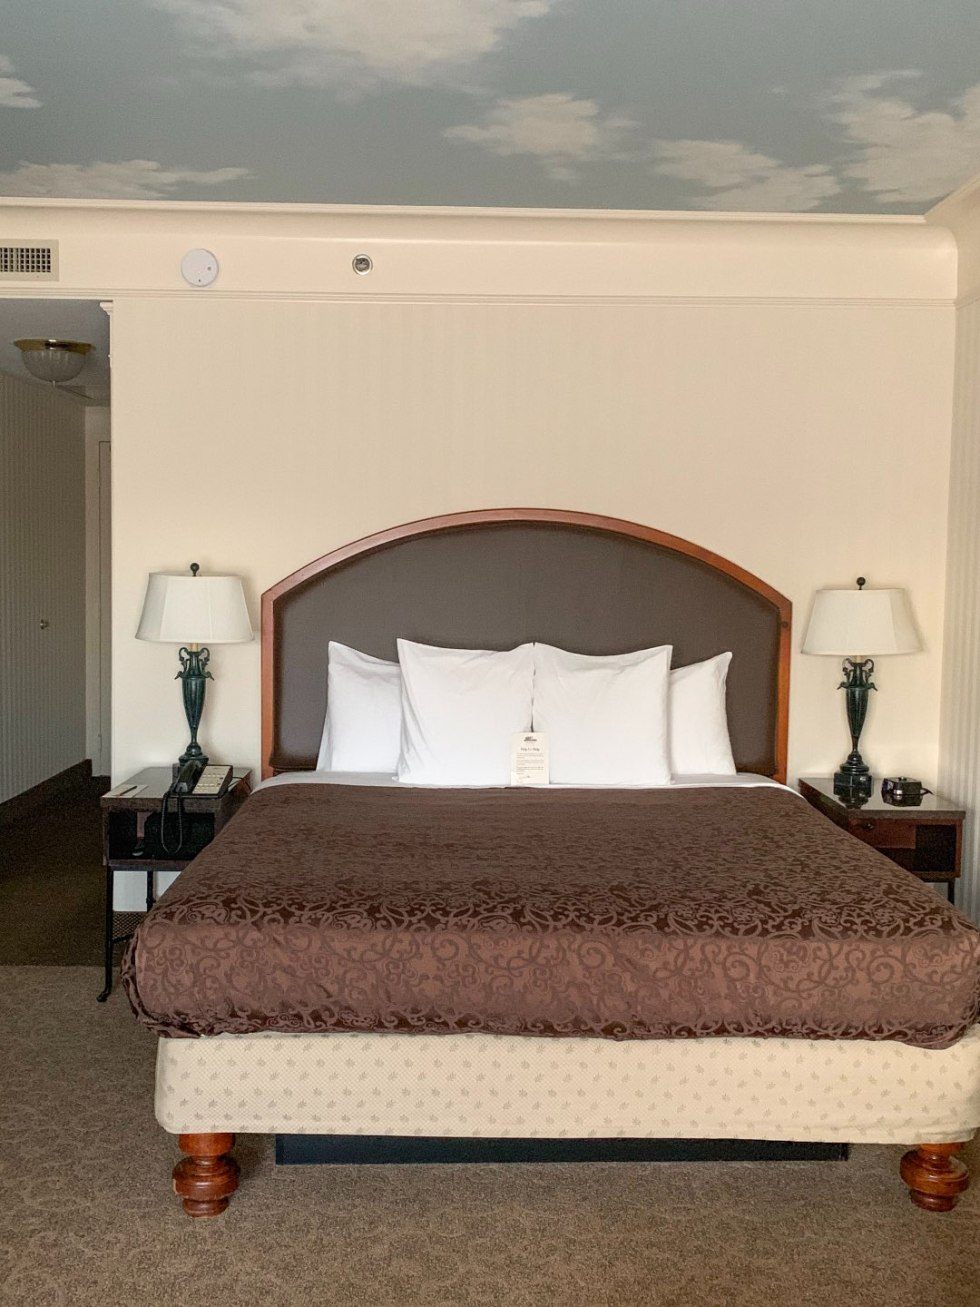 A Night at the O.Henry Hotel In Greensboro, NC - I'm Fixin' To - @mbg0112 | A Night at the O.Henry Hotel In Greensboro, NC by popular North Carolina blog, I'm fixin' To: image of a king size bed in a king room at the O. Henry Hotel with a nightstand and lamp on each side of the bed.